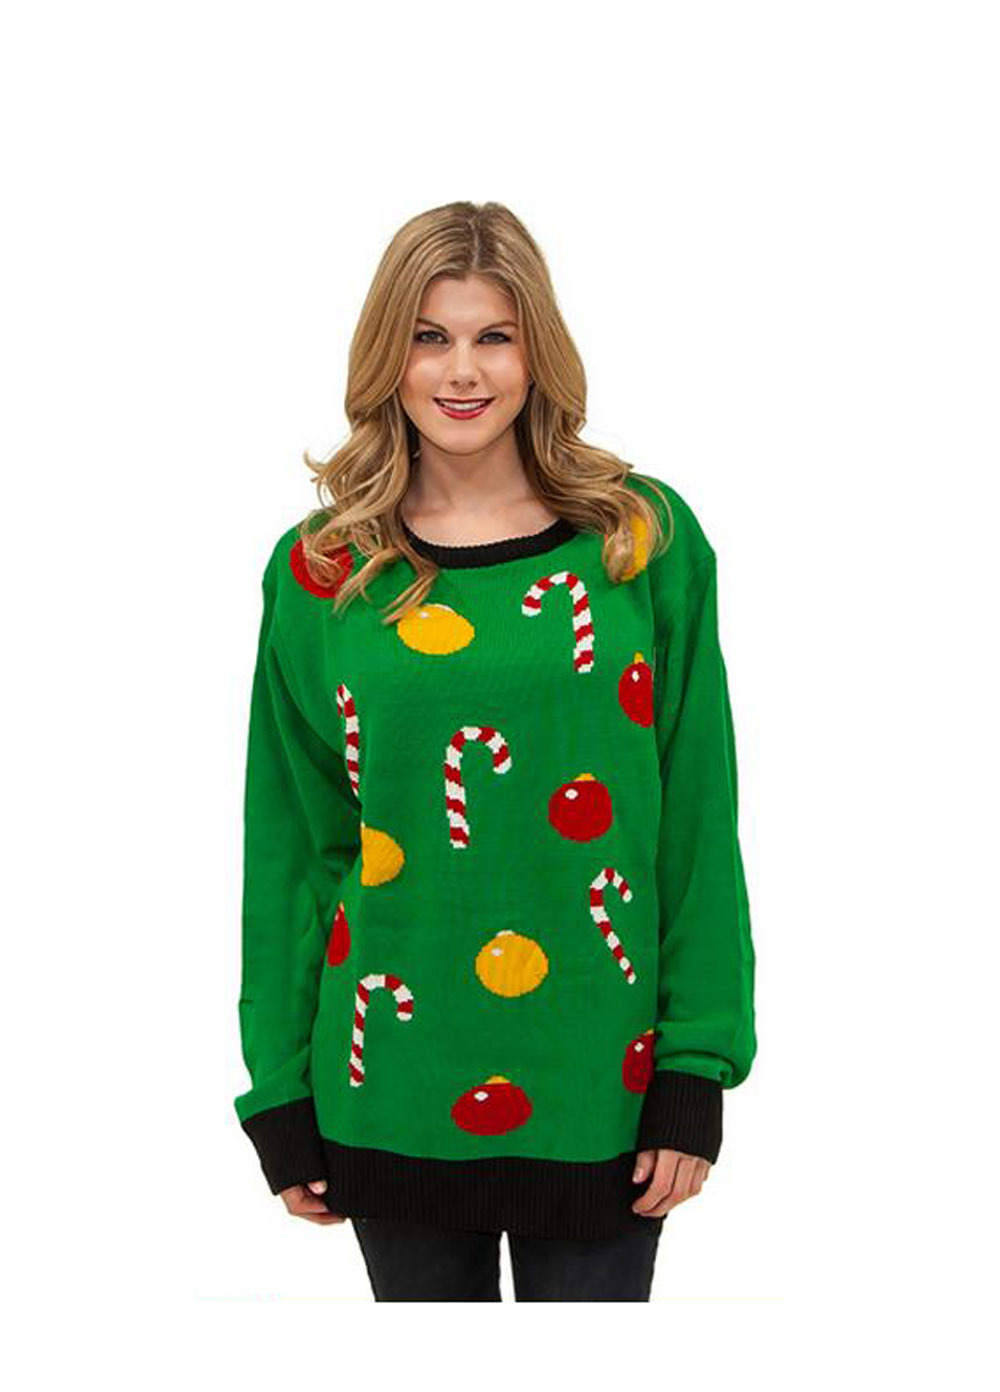 3xl Christmas Sweater